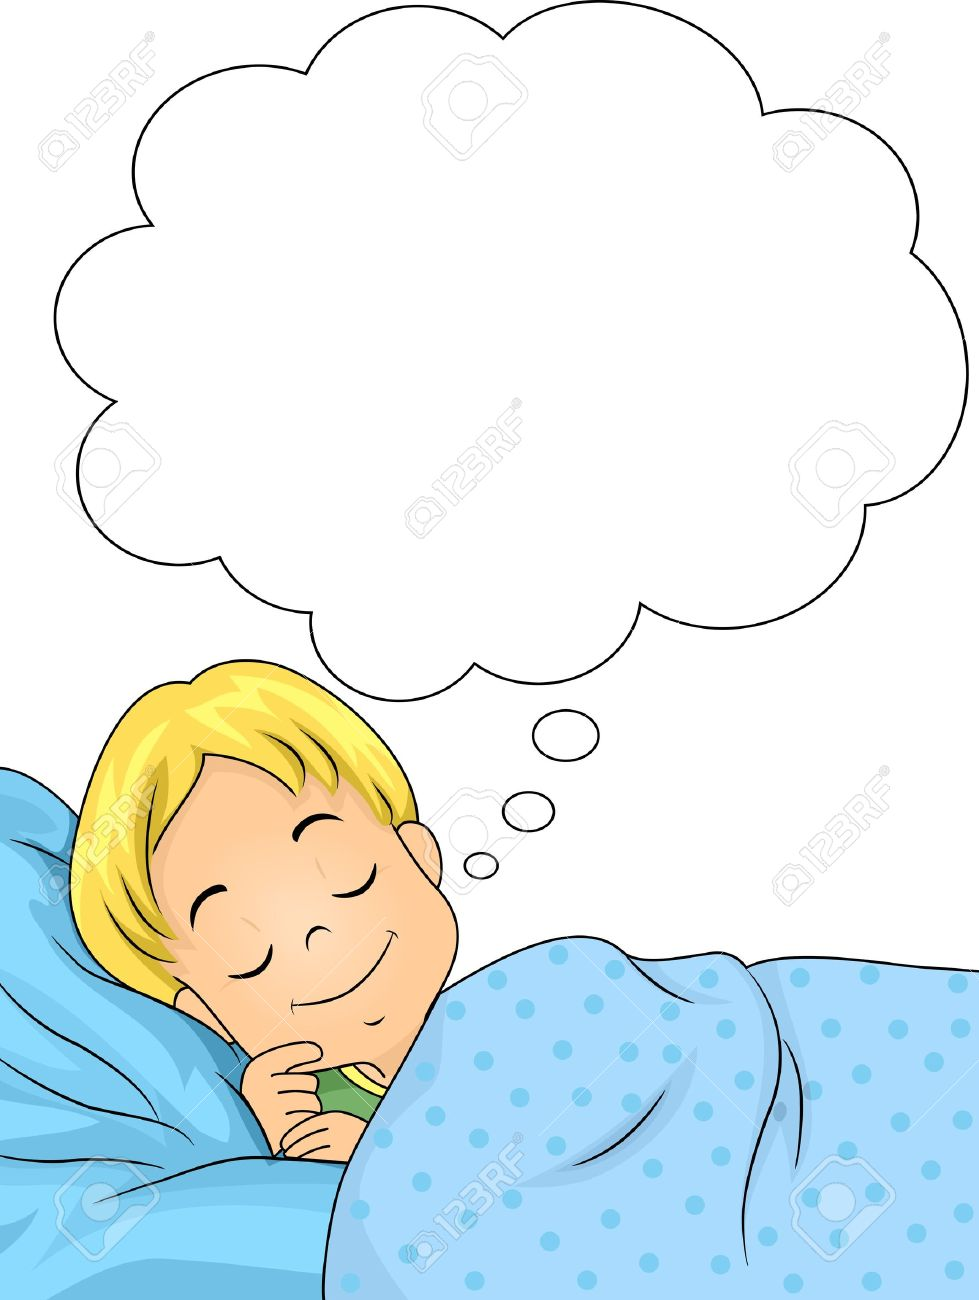 Dreaming Clipart